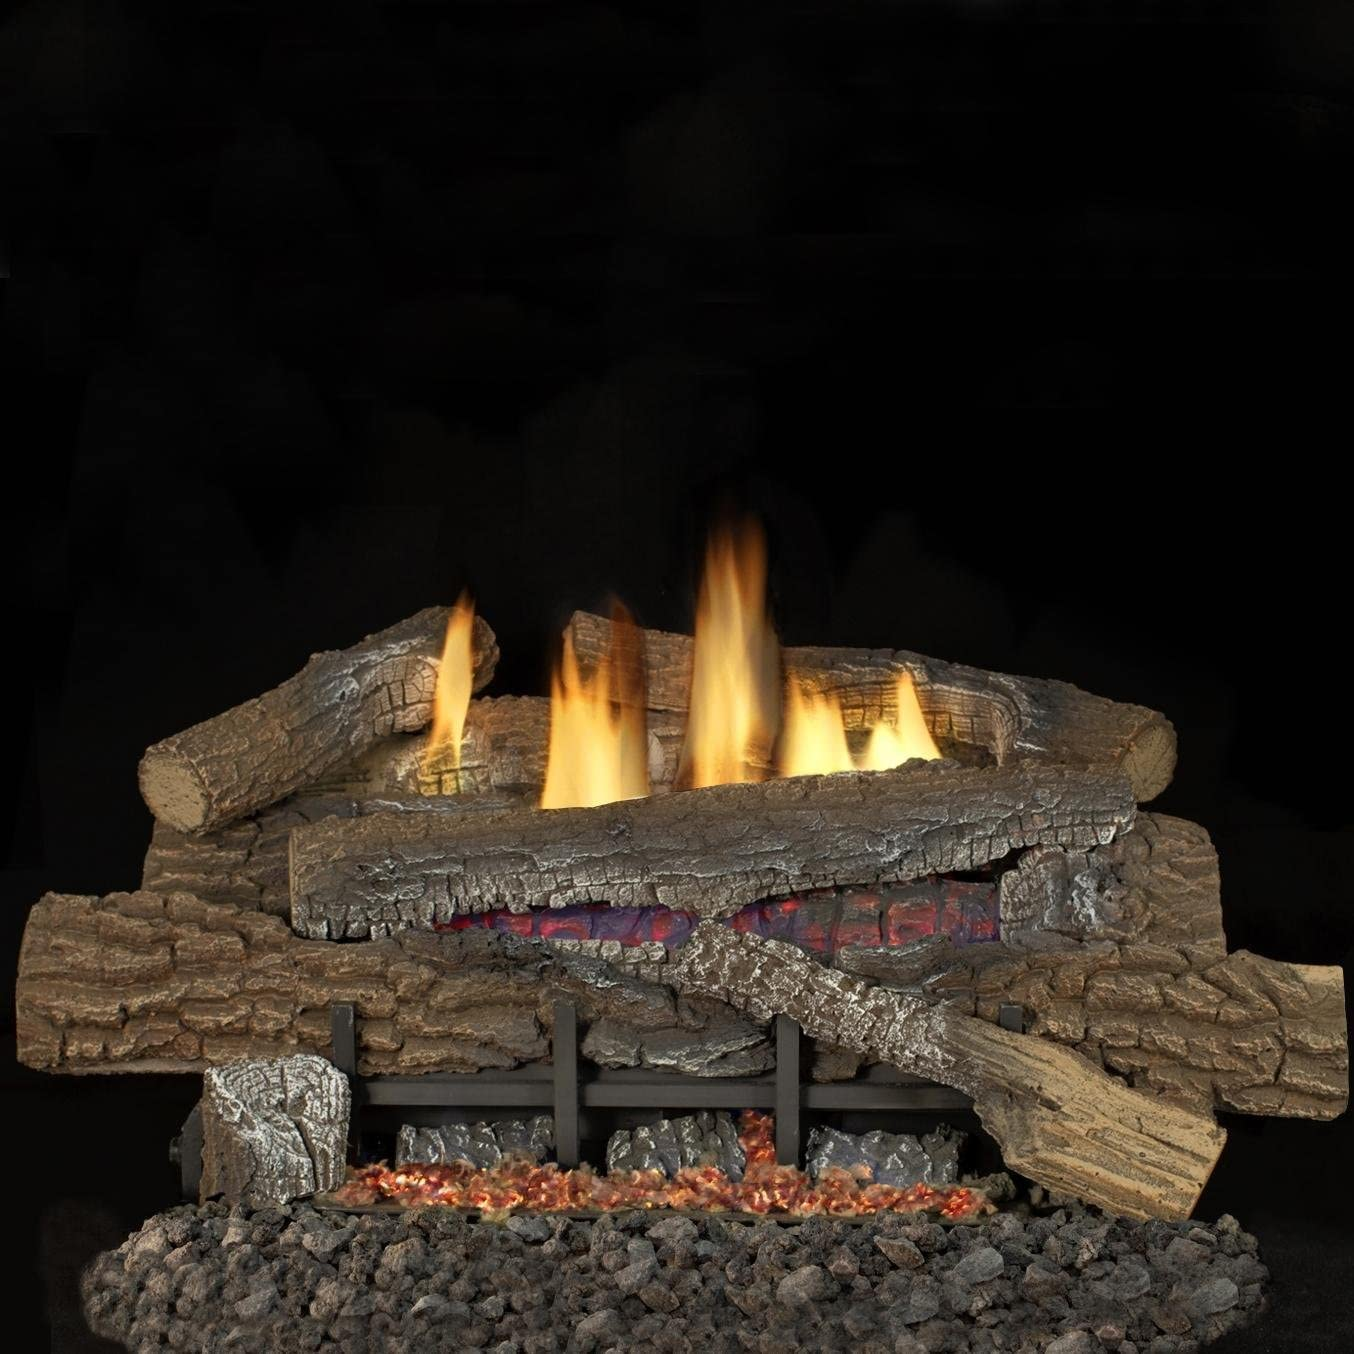 Superior Fireplaces 24-Inch Boulder Mountain Gas Log Set with Vent-Free Natural Gas Glow Ramp Burner - Electronic Ignition w/Thermostatic Remote